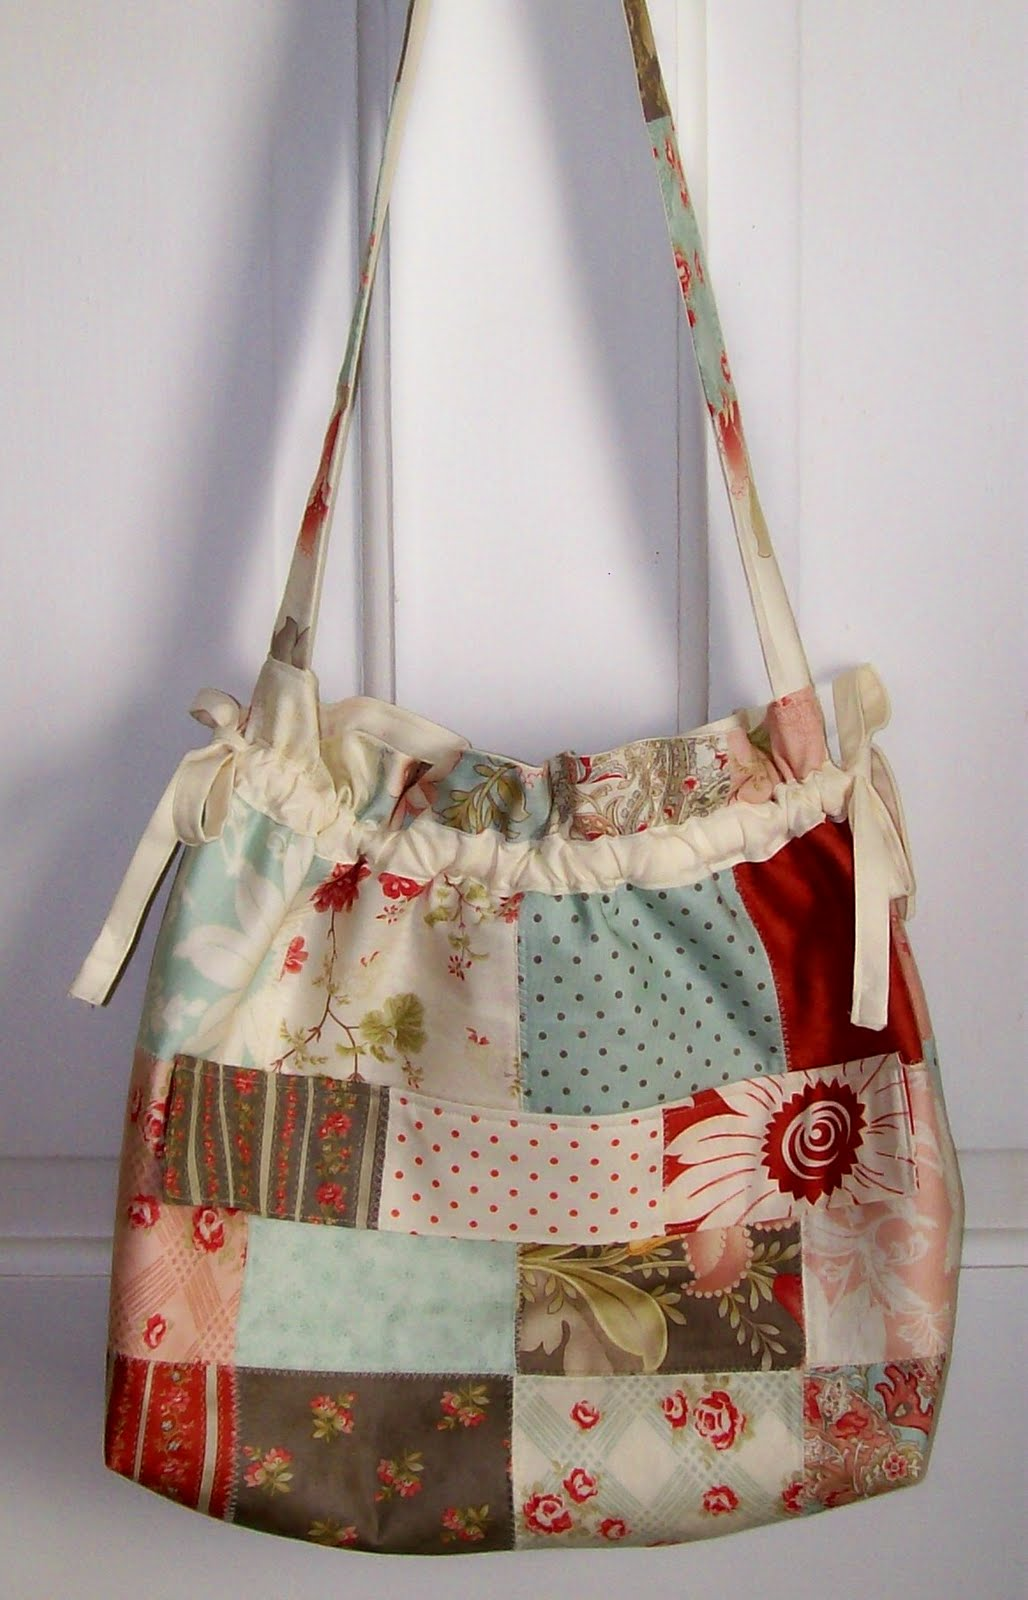 Charming Purse-o-nality Bag